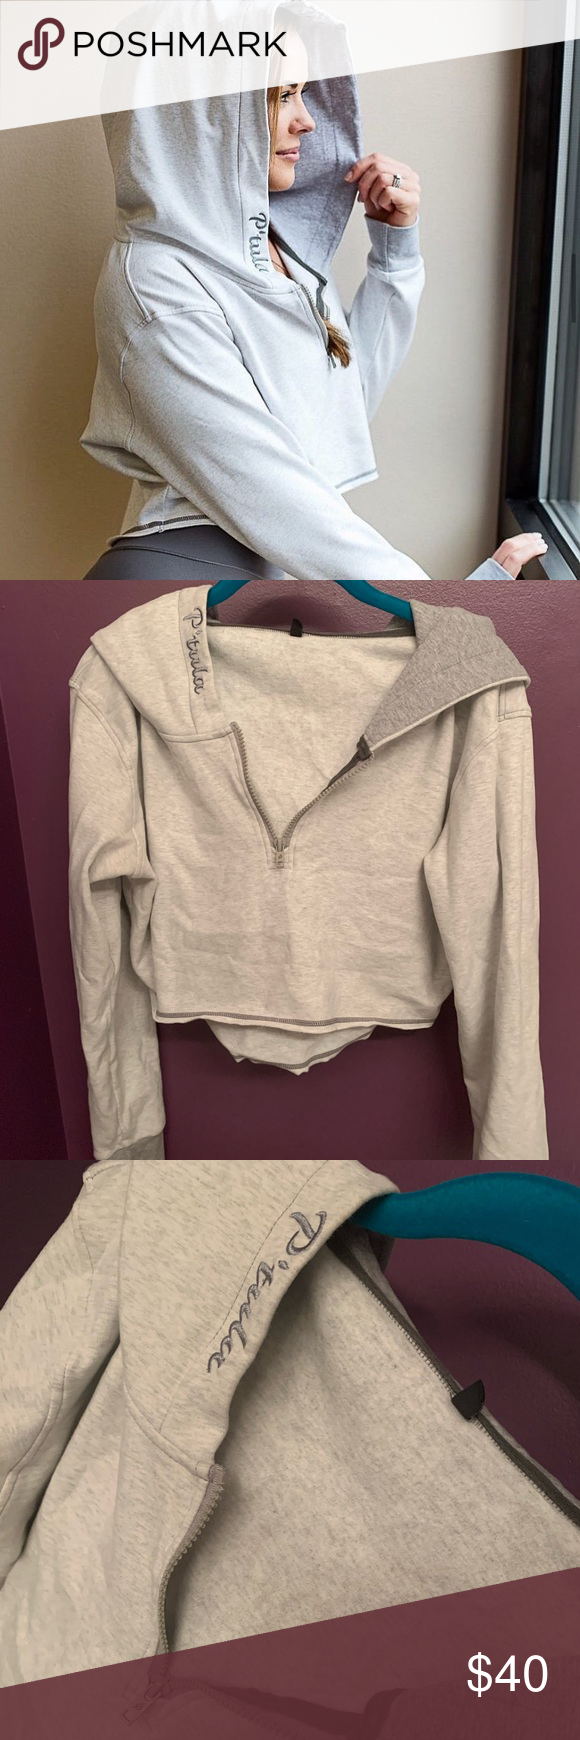 P Tula Eva Chill Out Crop Hoodie Cropped Hoodie Hoodies Sweatshirt Tops After getting my computer to play nice with blogger and taking care of family obligations, this has taken longer than i had hoped. pinterest